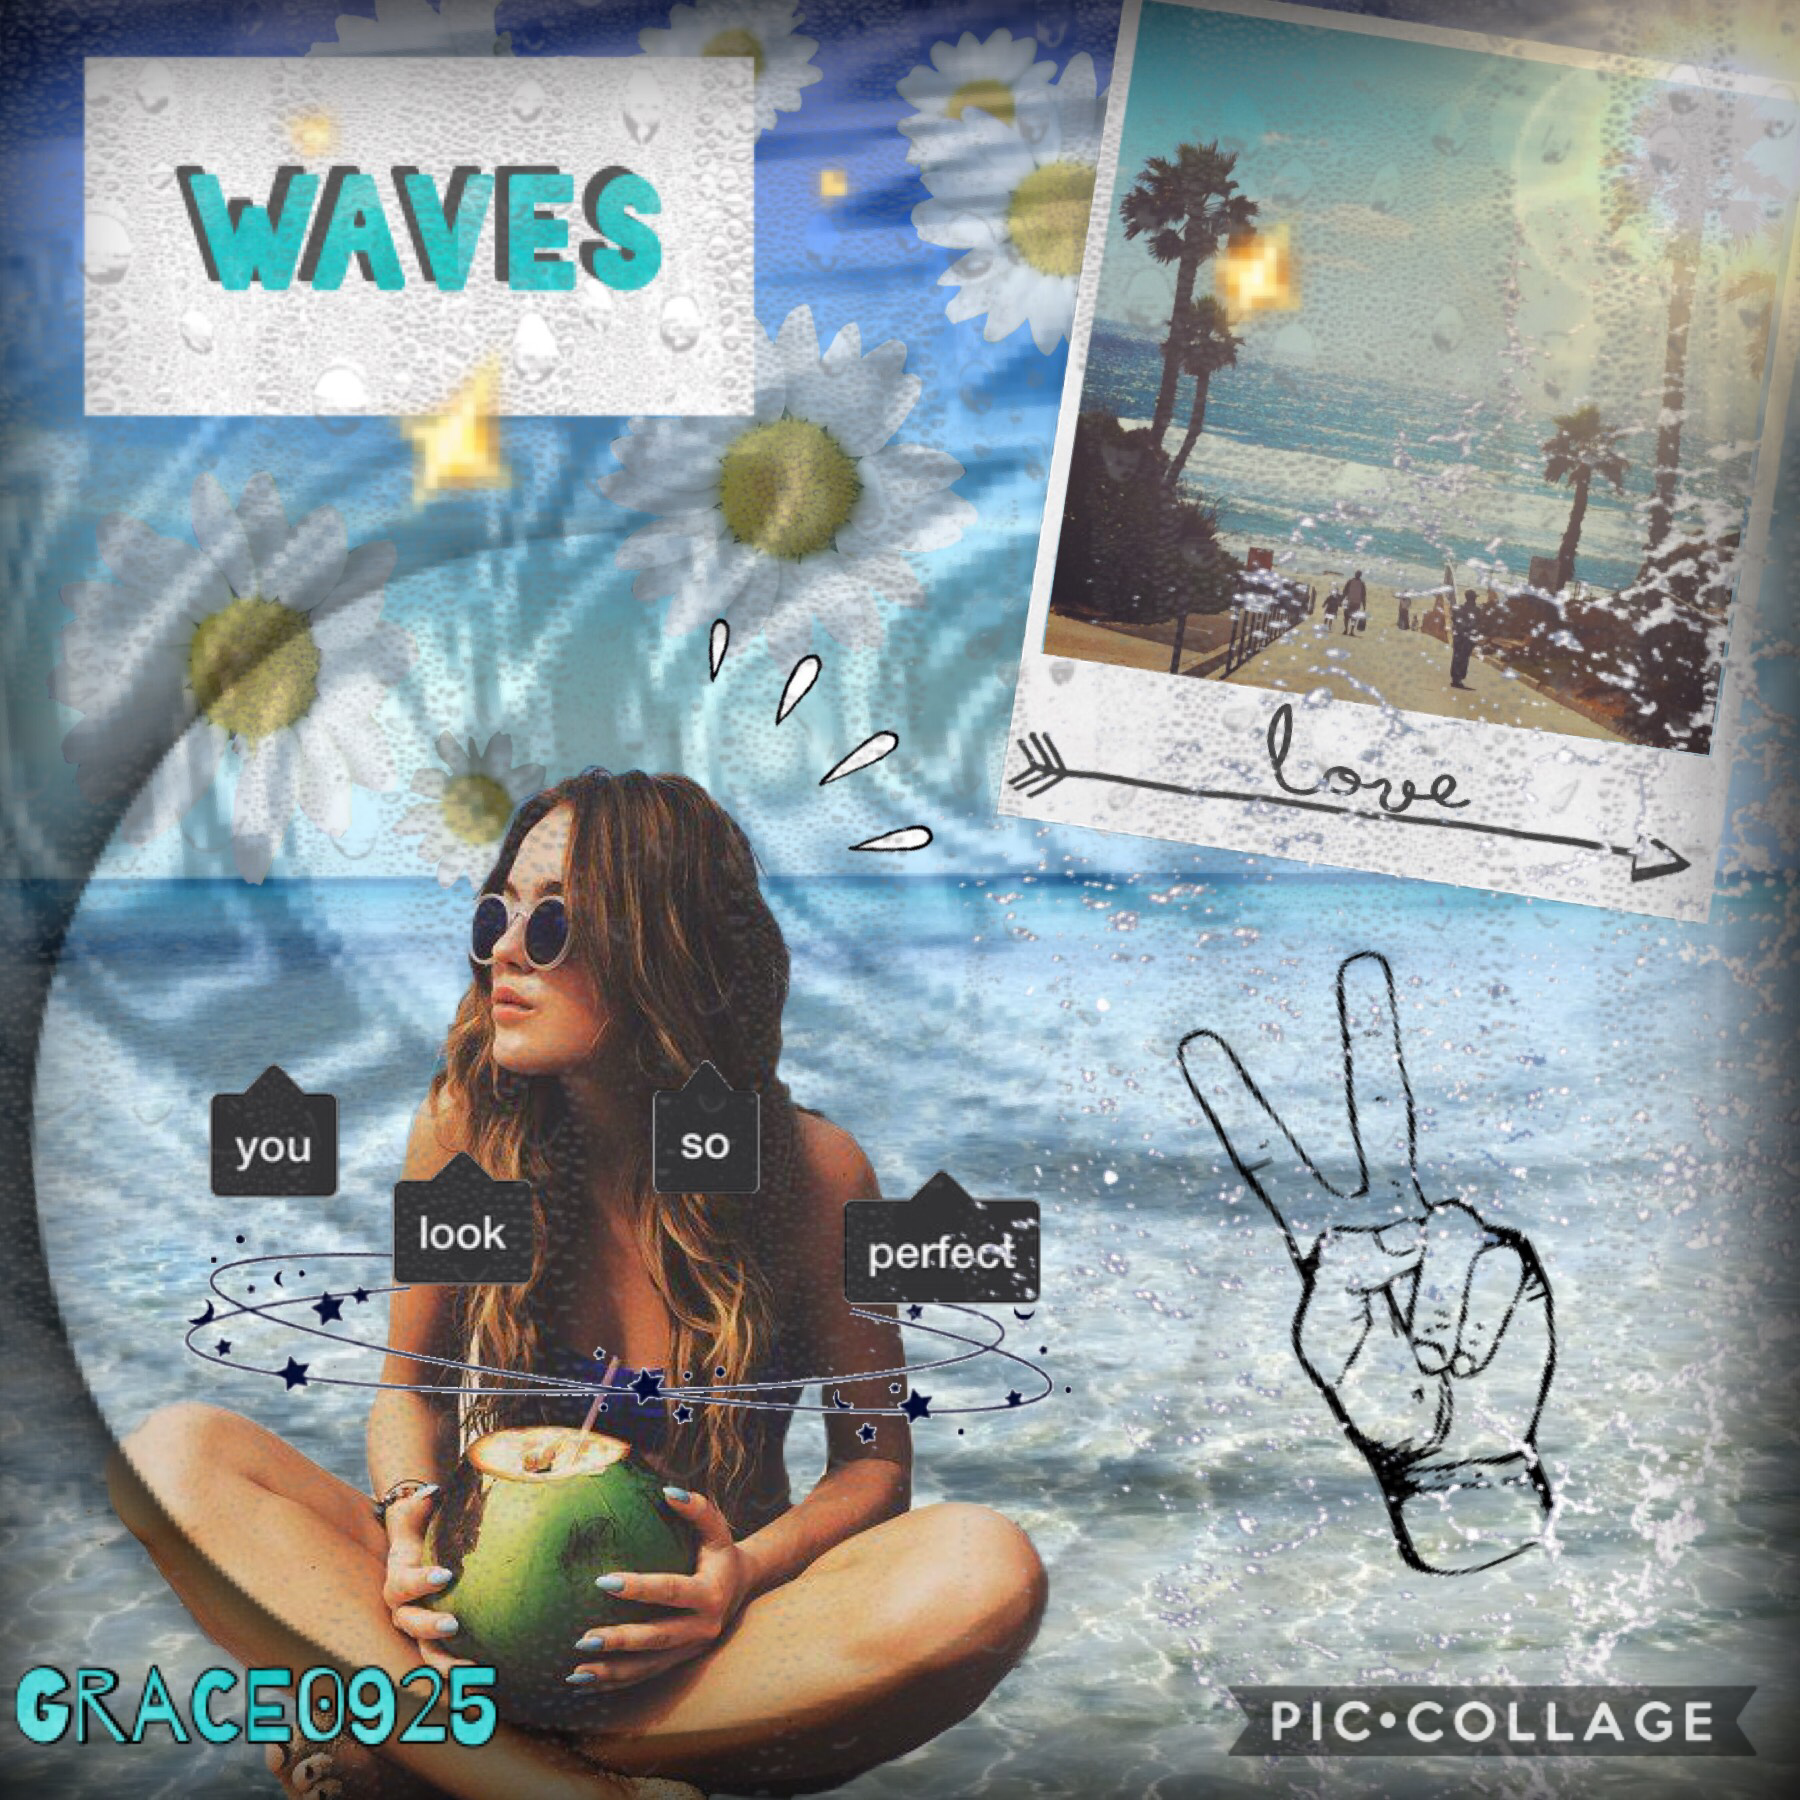 🌸🏝🌼💧tap💧🌼🏝🌸  Heyyyyy  Just ur classic beach pic...  I'm trying something new -Grace0925🌻🥀